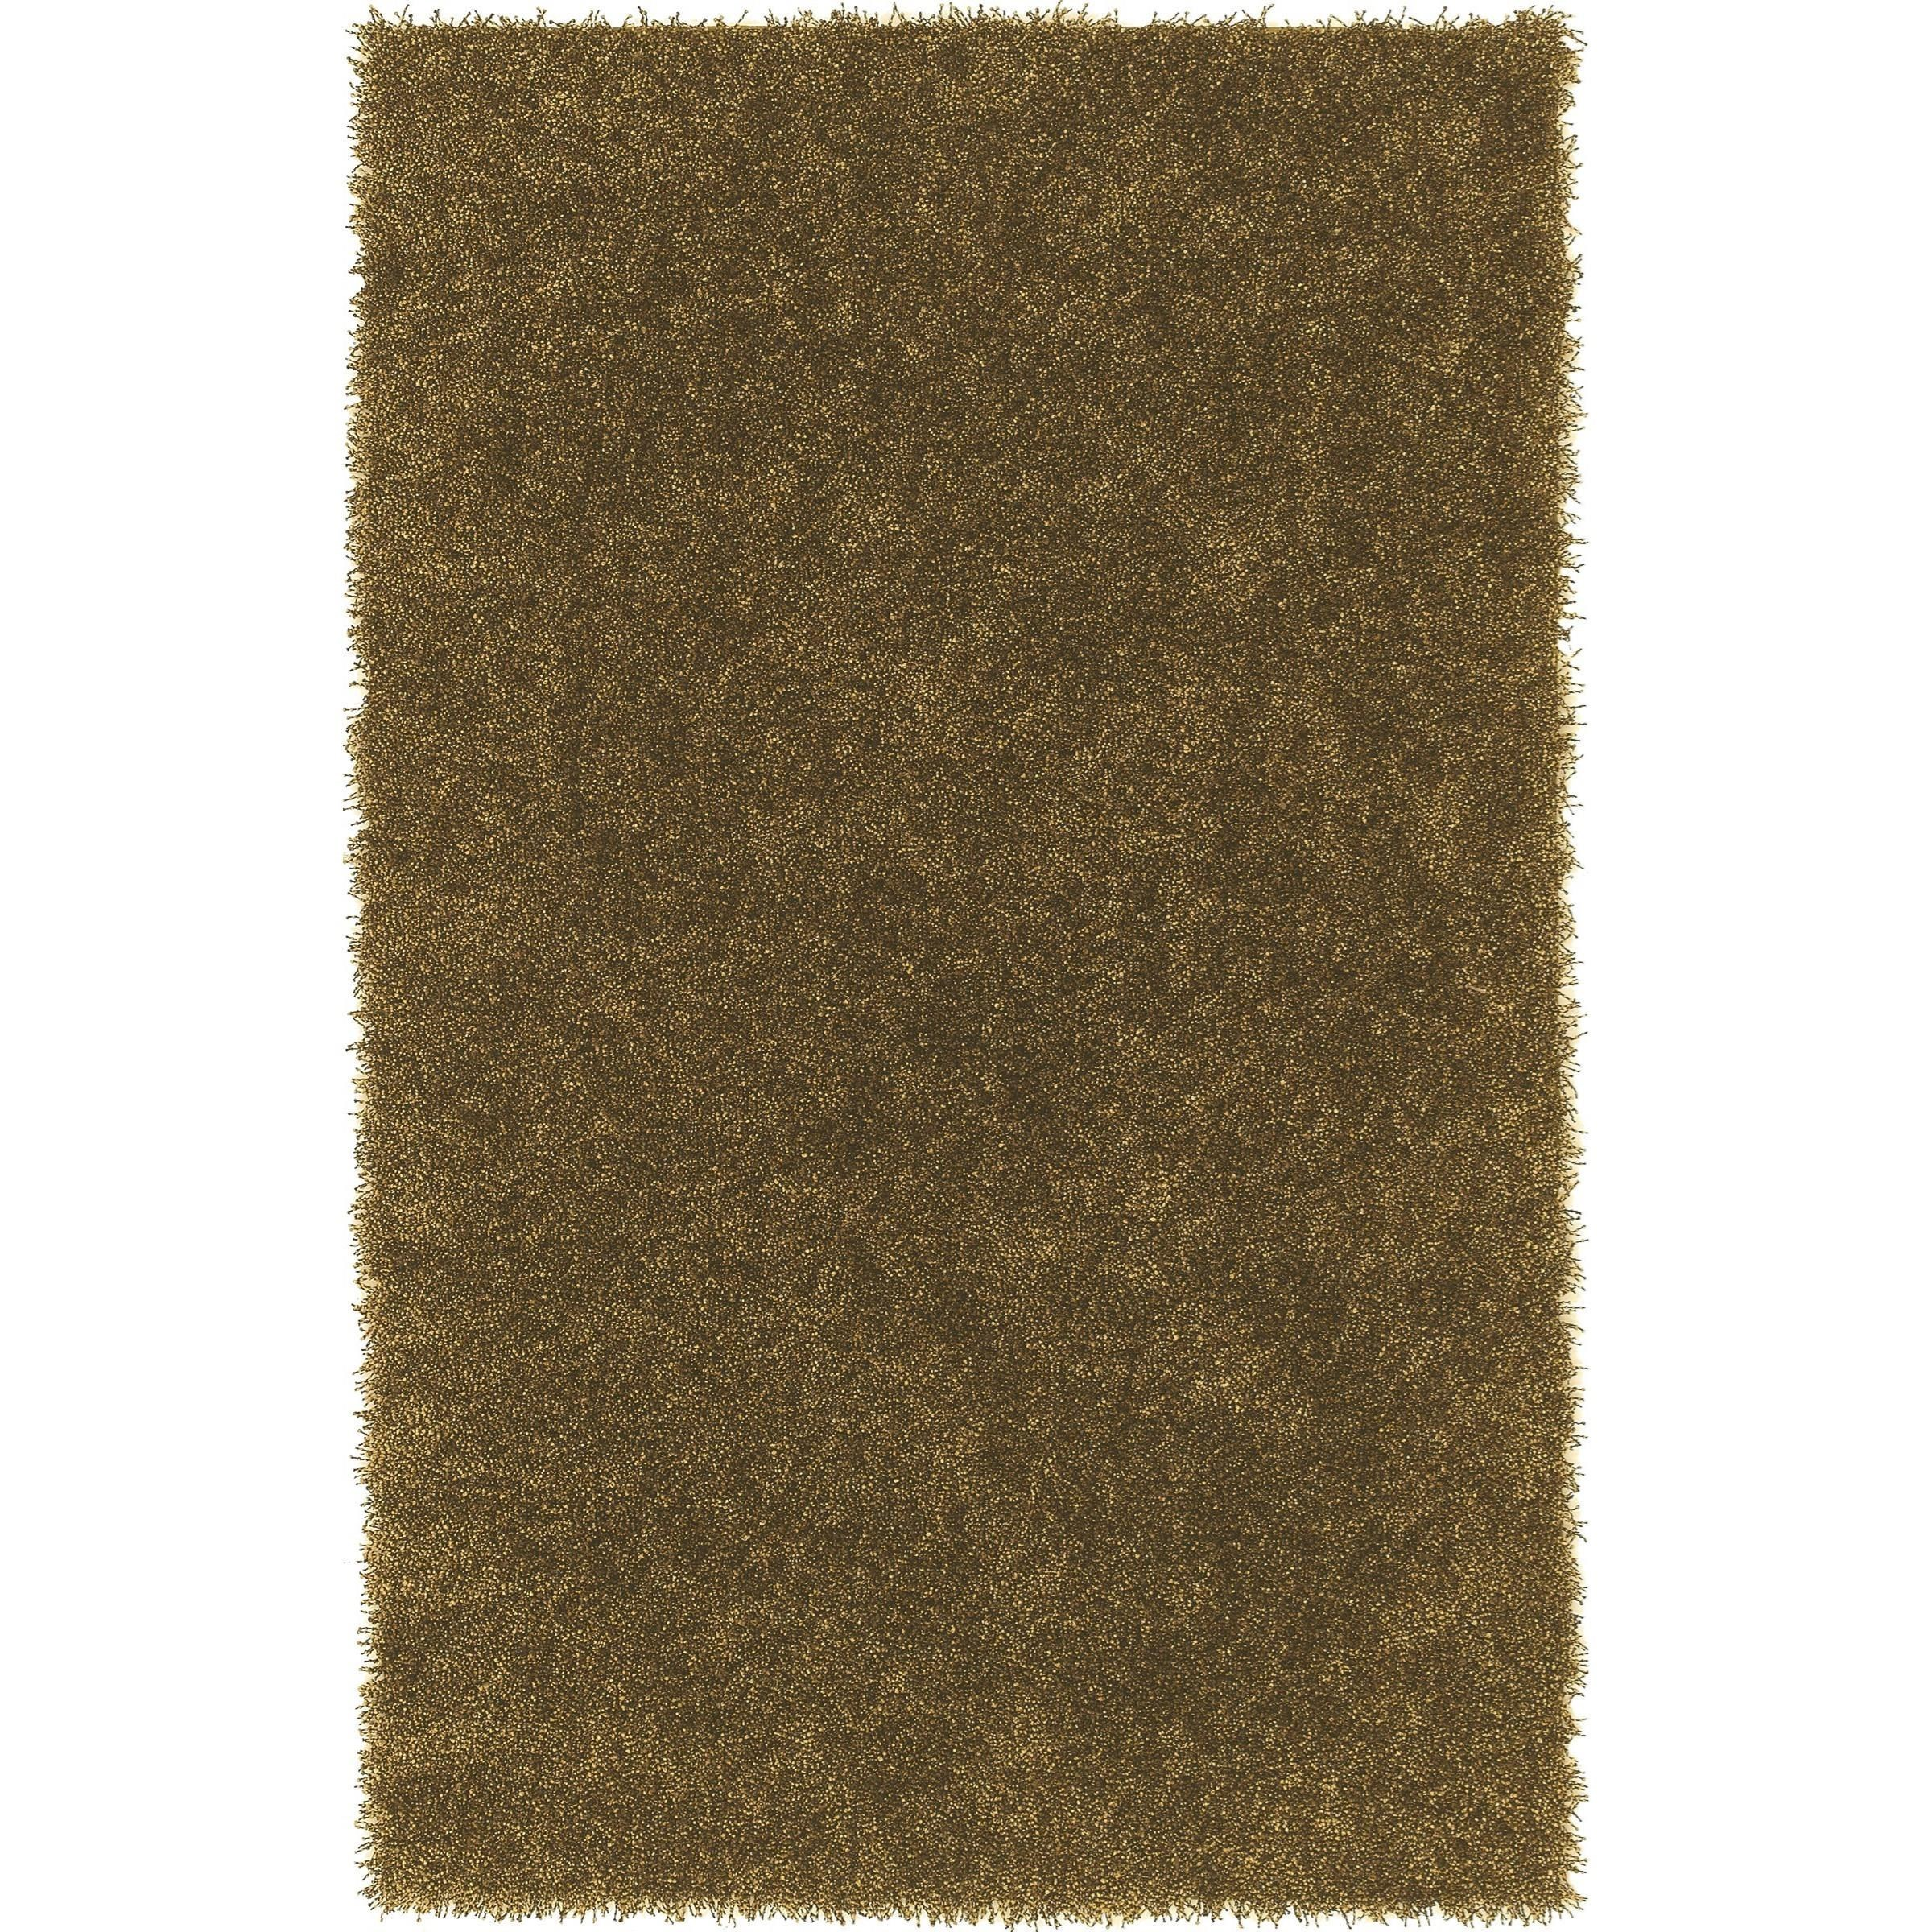 Dalyn Belize Gold 9'X13' Rug - Item Number: BZ100GO9X13